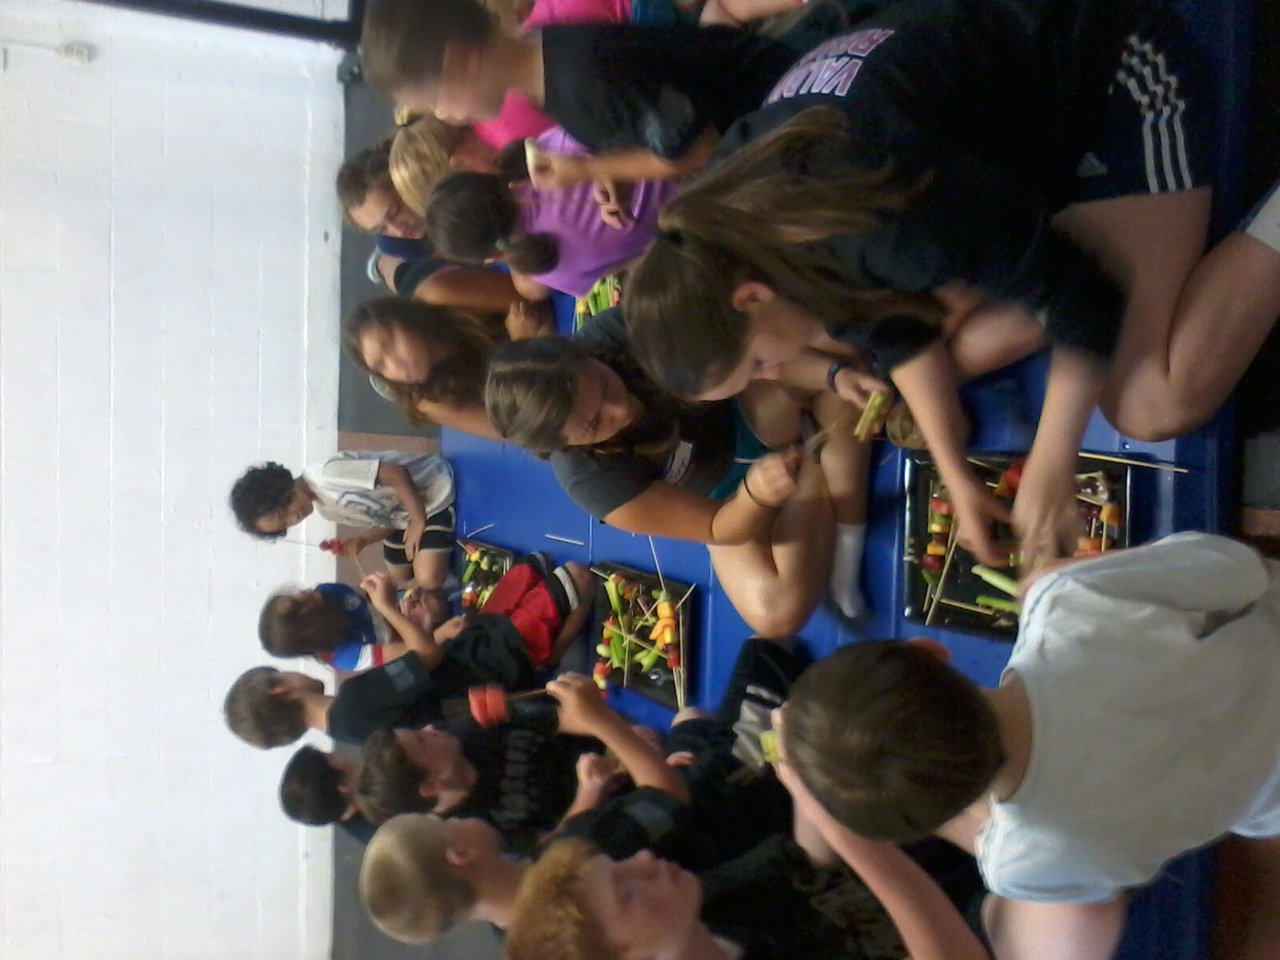 Kids Camp making fruit kabobs after many discussions about nutrition, meals, proper eating and healthy snack choices.